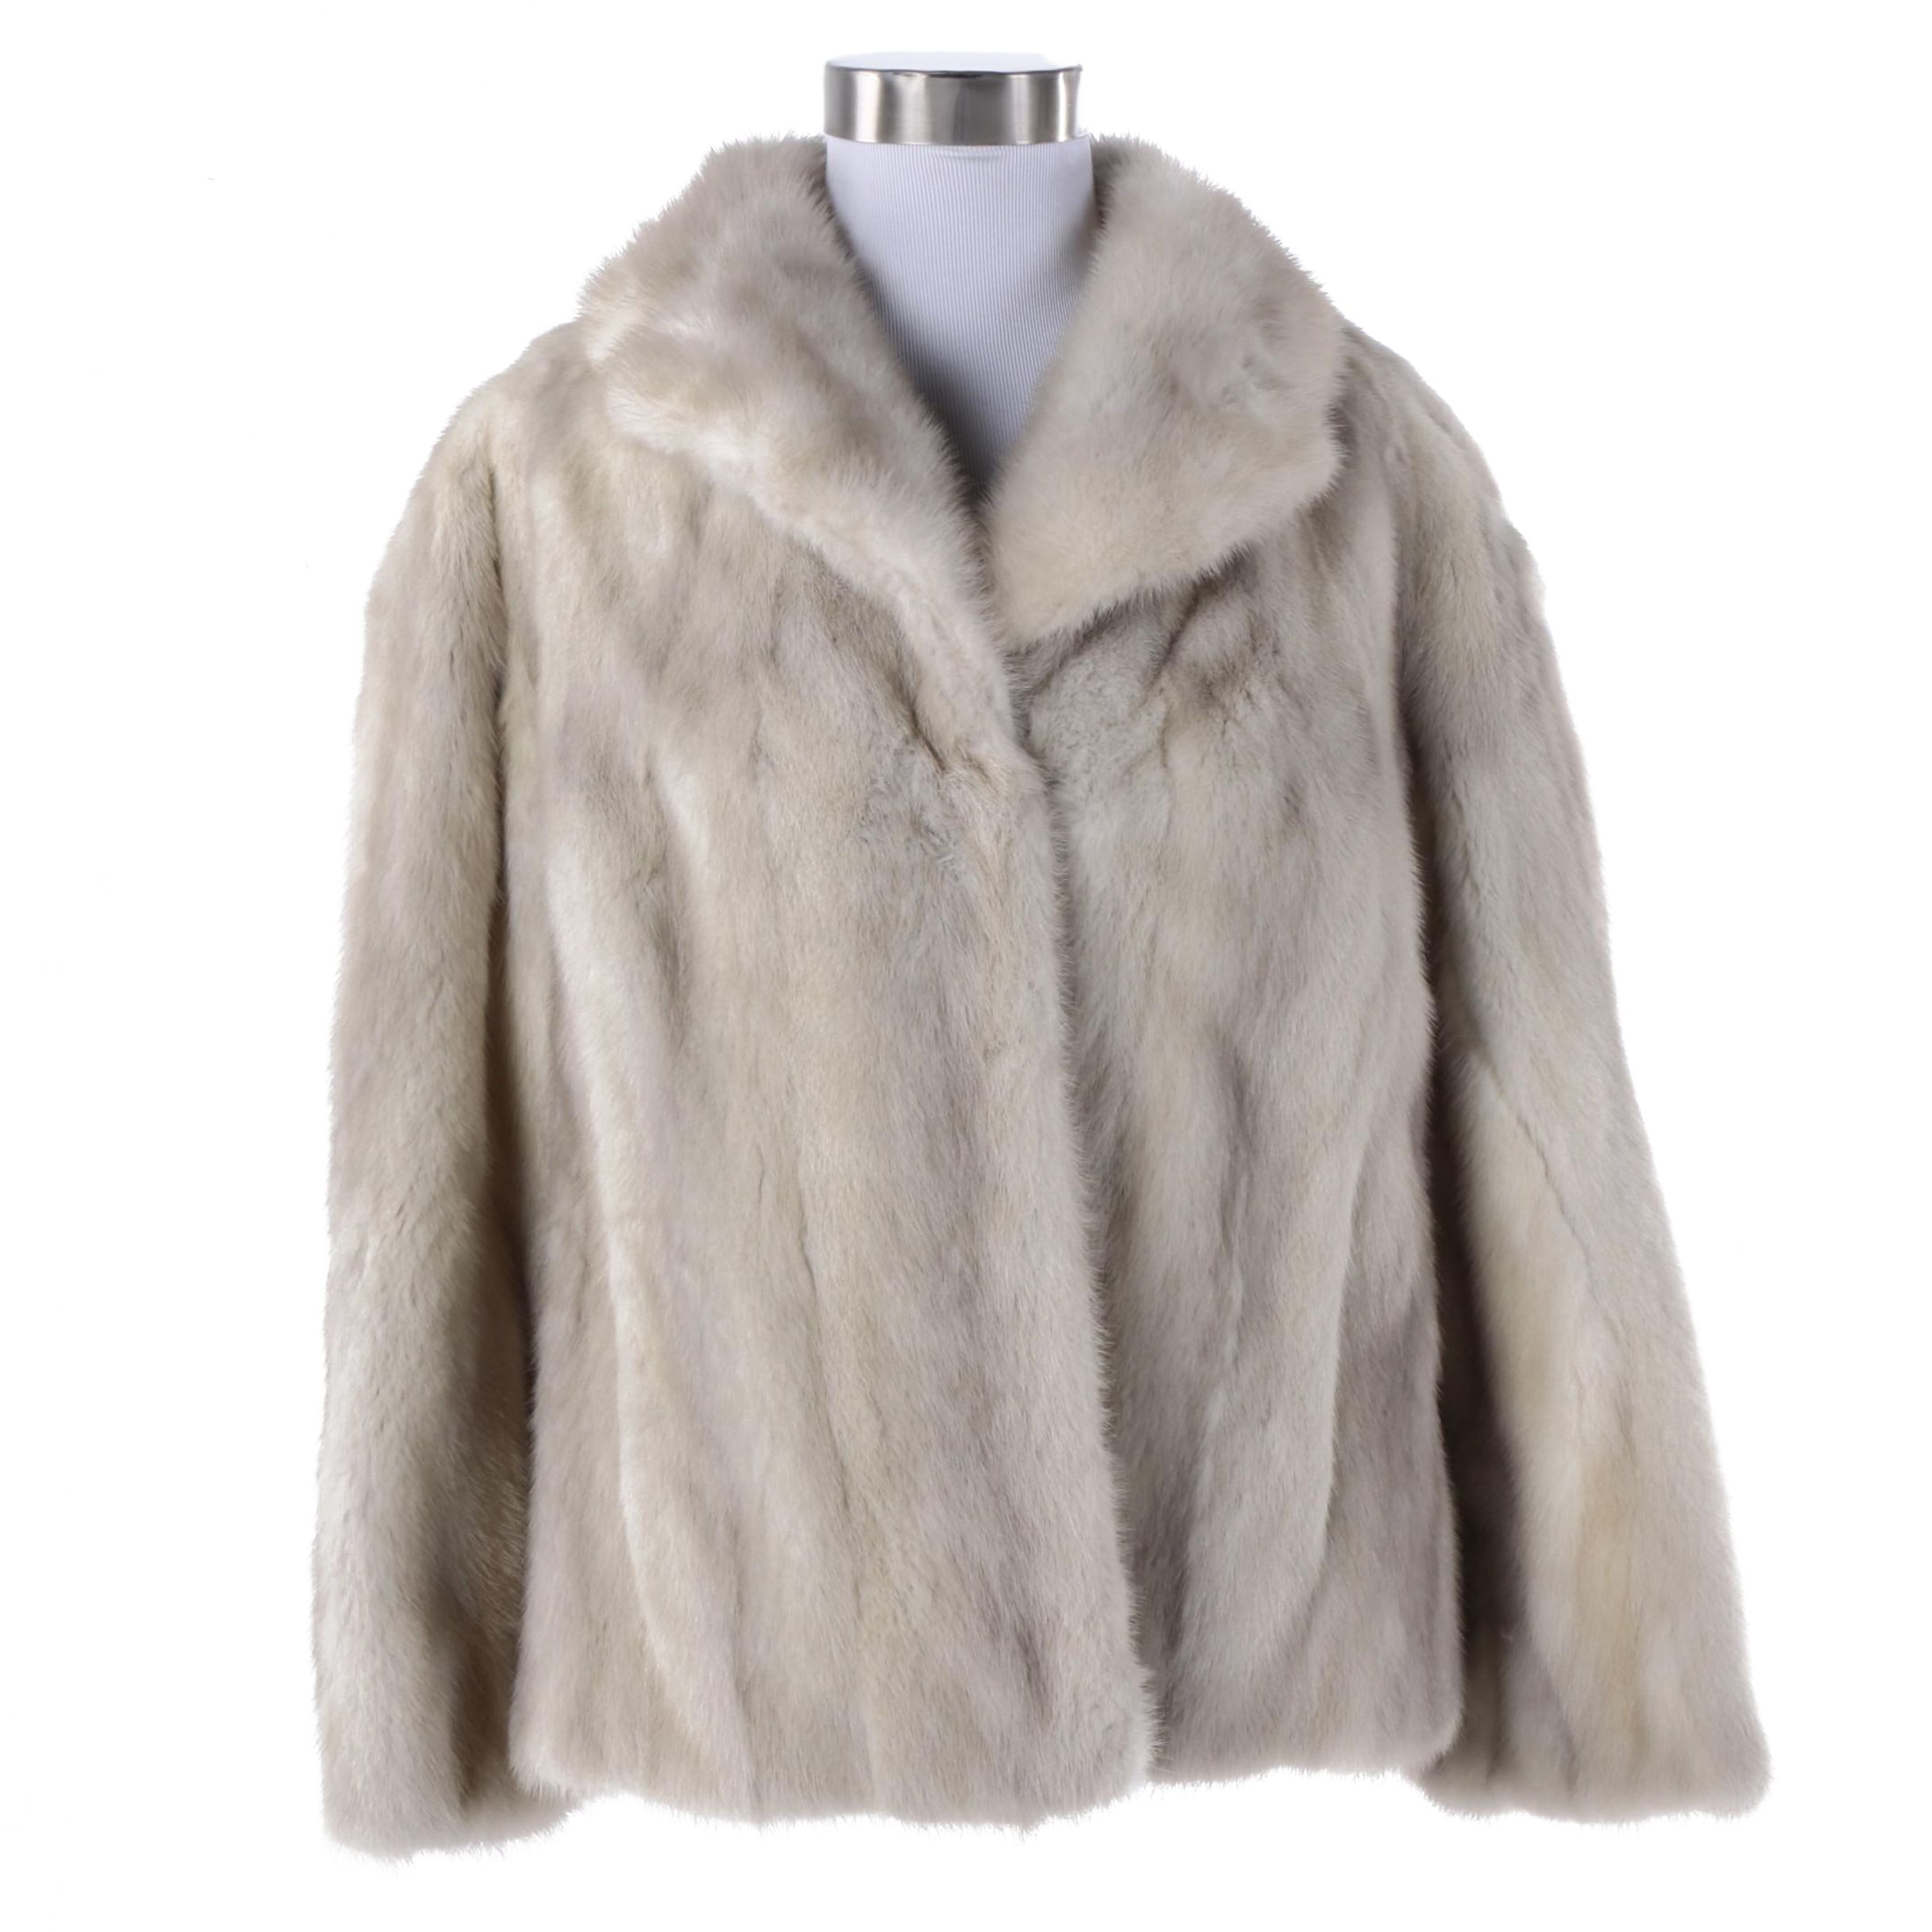 Women's The Denver Grey Mink Fur Coat